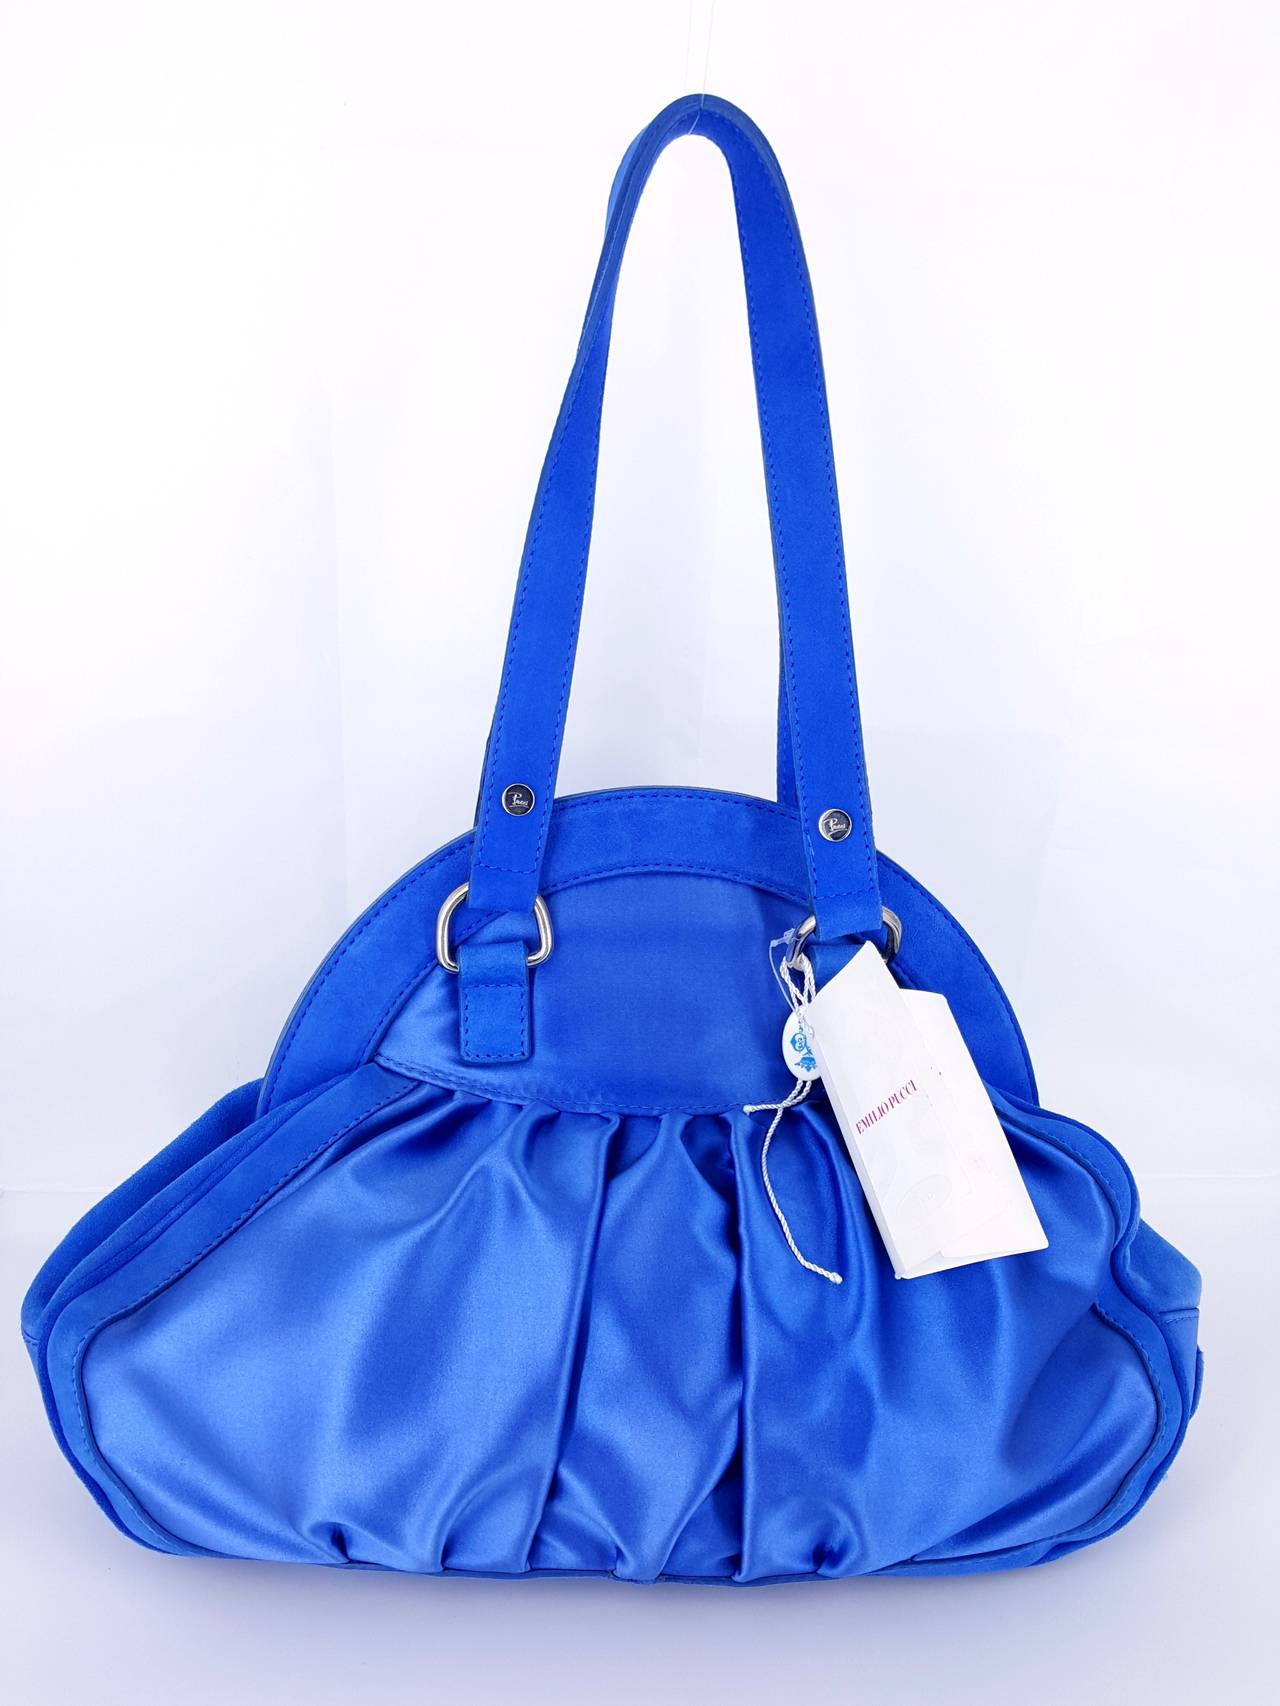 Offered for sale is this great cobalt blue Pucci handbag.  This is an awesome color with a fun interior.  It is Satin with suede trim.  The interior has 1 zippered pocket.  Pucci always has the best blues.  New with tags, but from about 4 years ago,